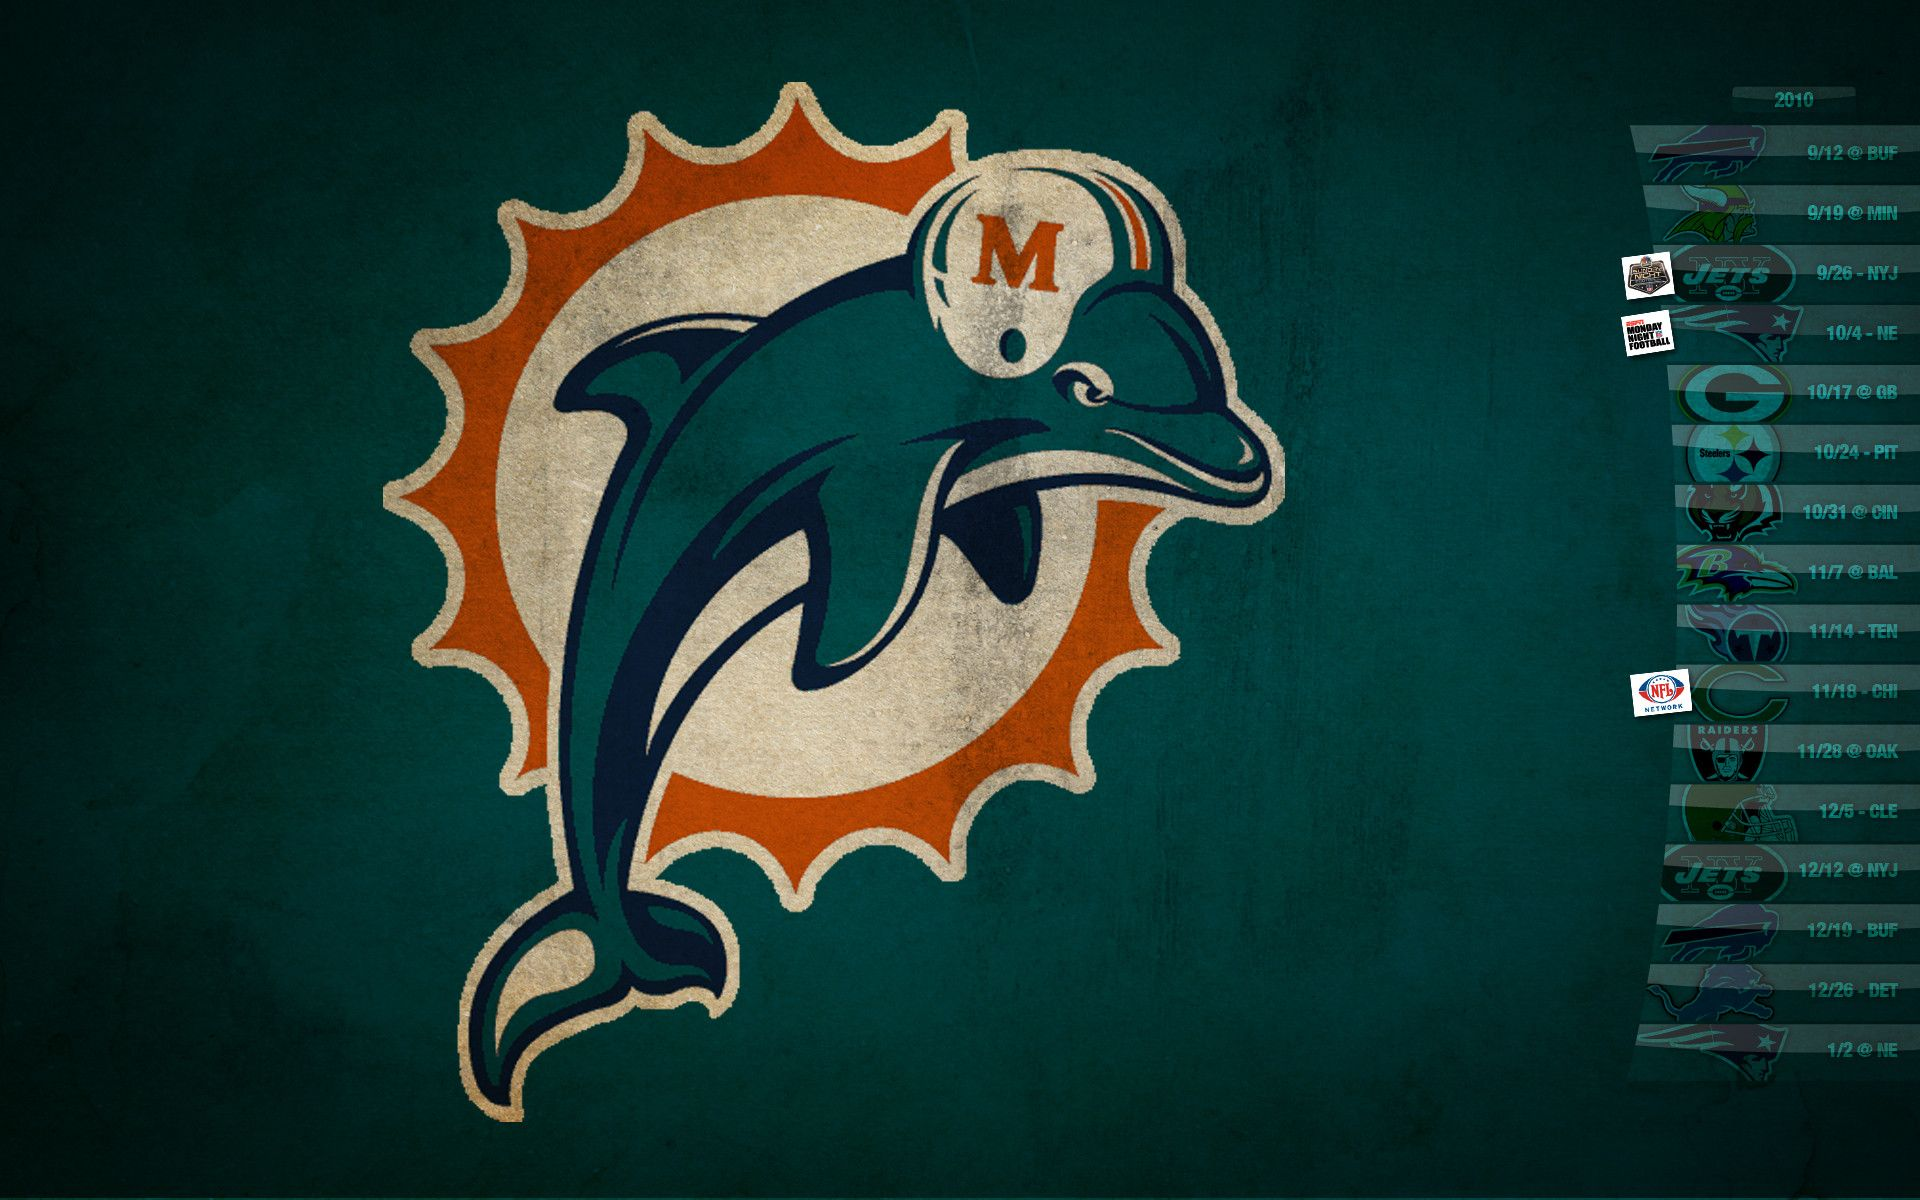 Miami dolphins schedule wallpaper 1024768 miami dolphin miami dolphins schedule wallpaper 1024768 miami dolphin wallpapers 41 wallpapers adorable voltagebd